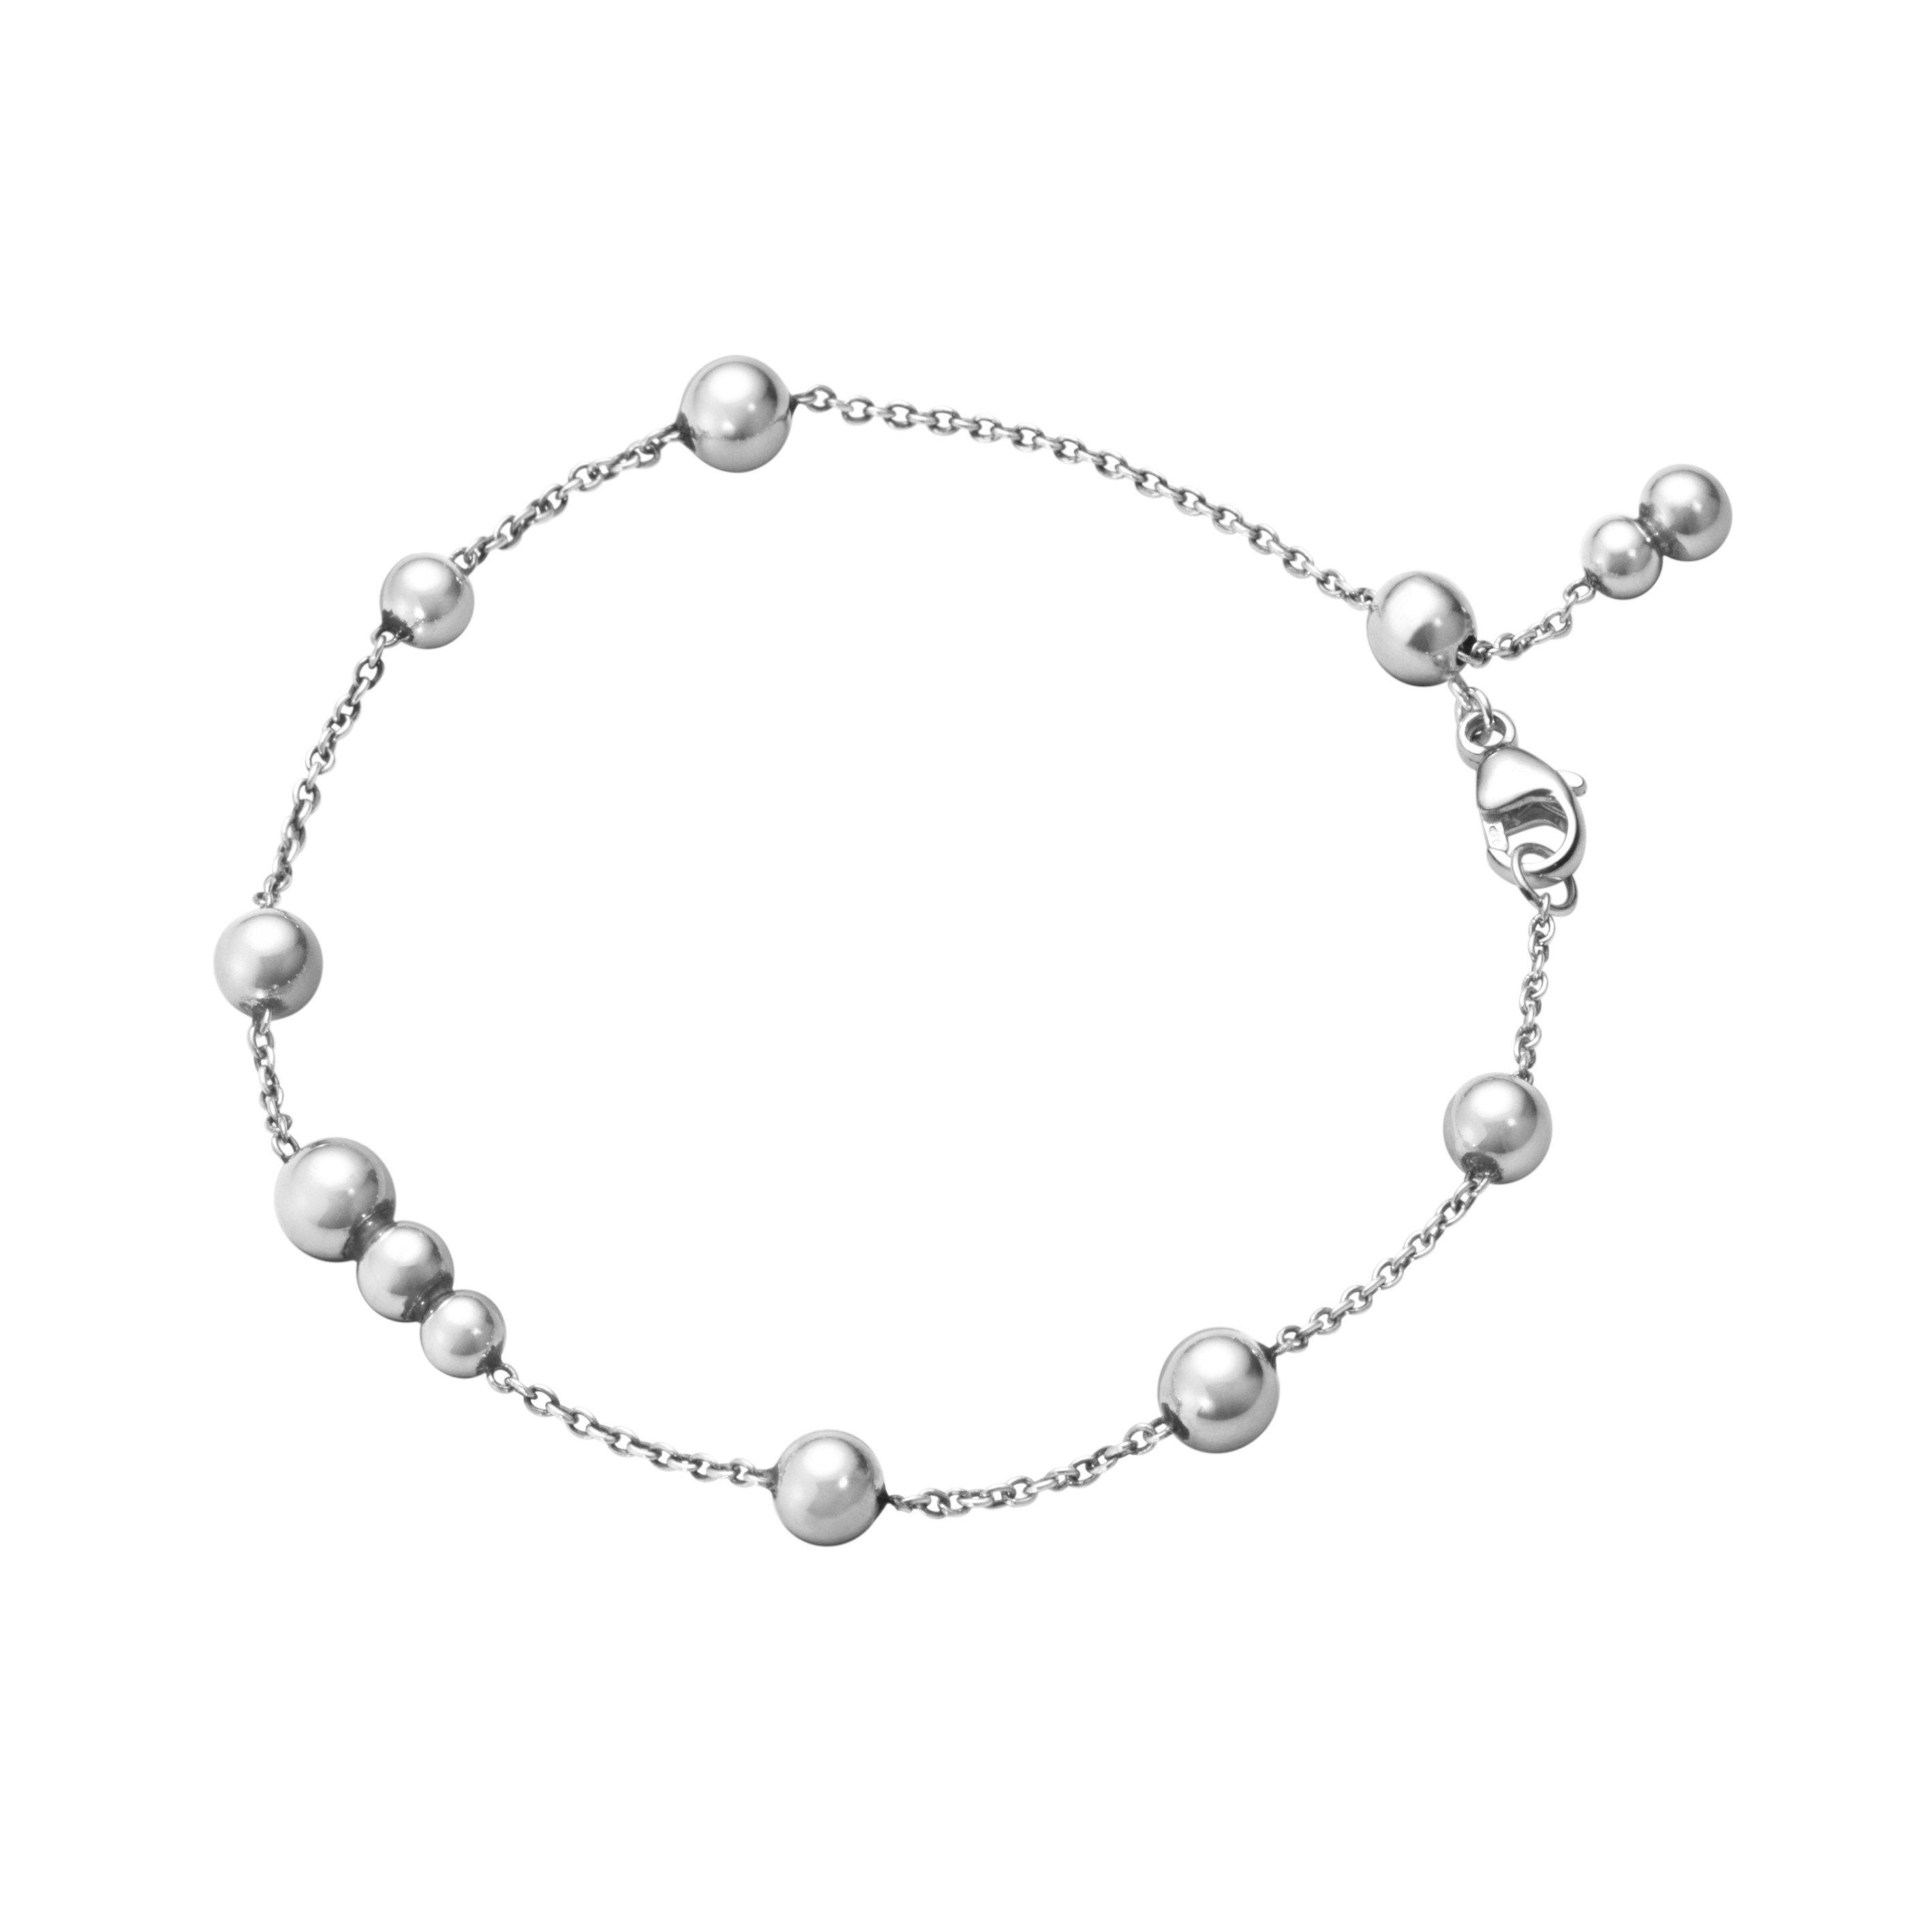 Georg Jensen Grape armbånd - 10014405